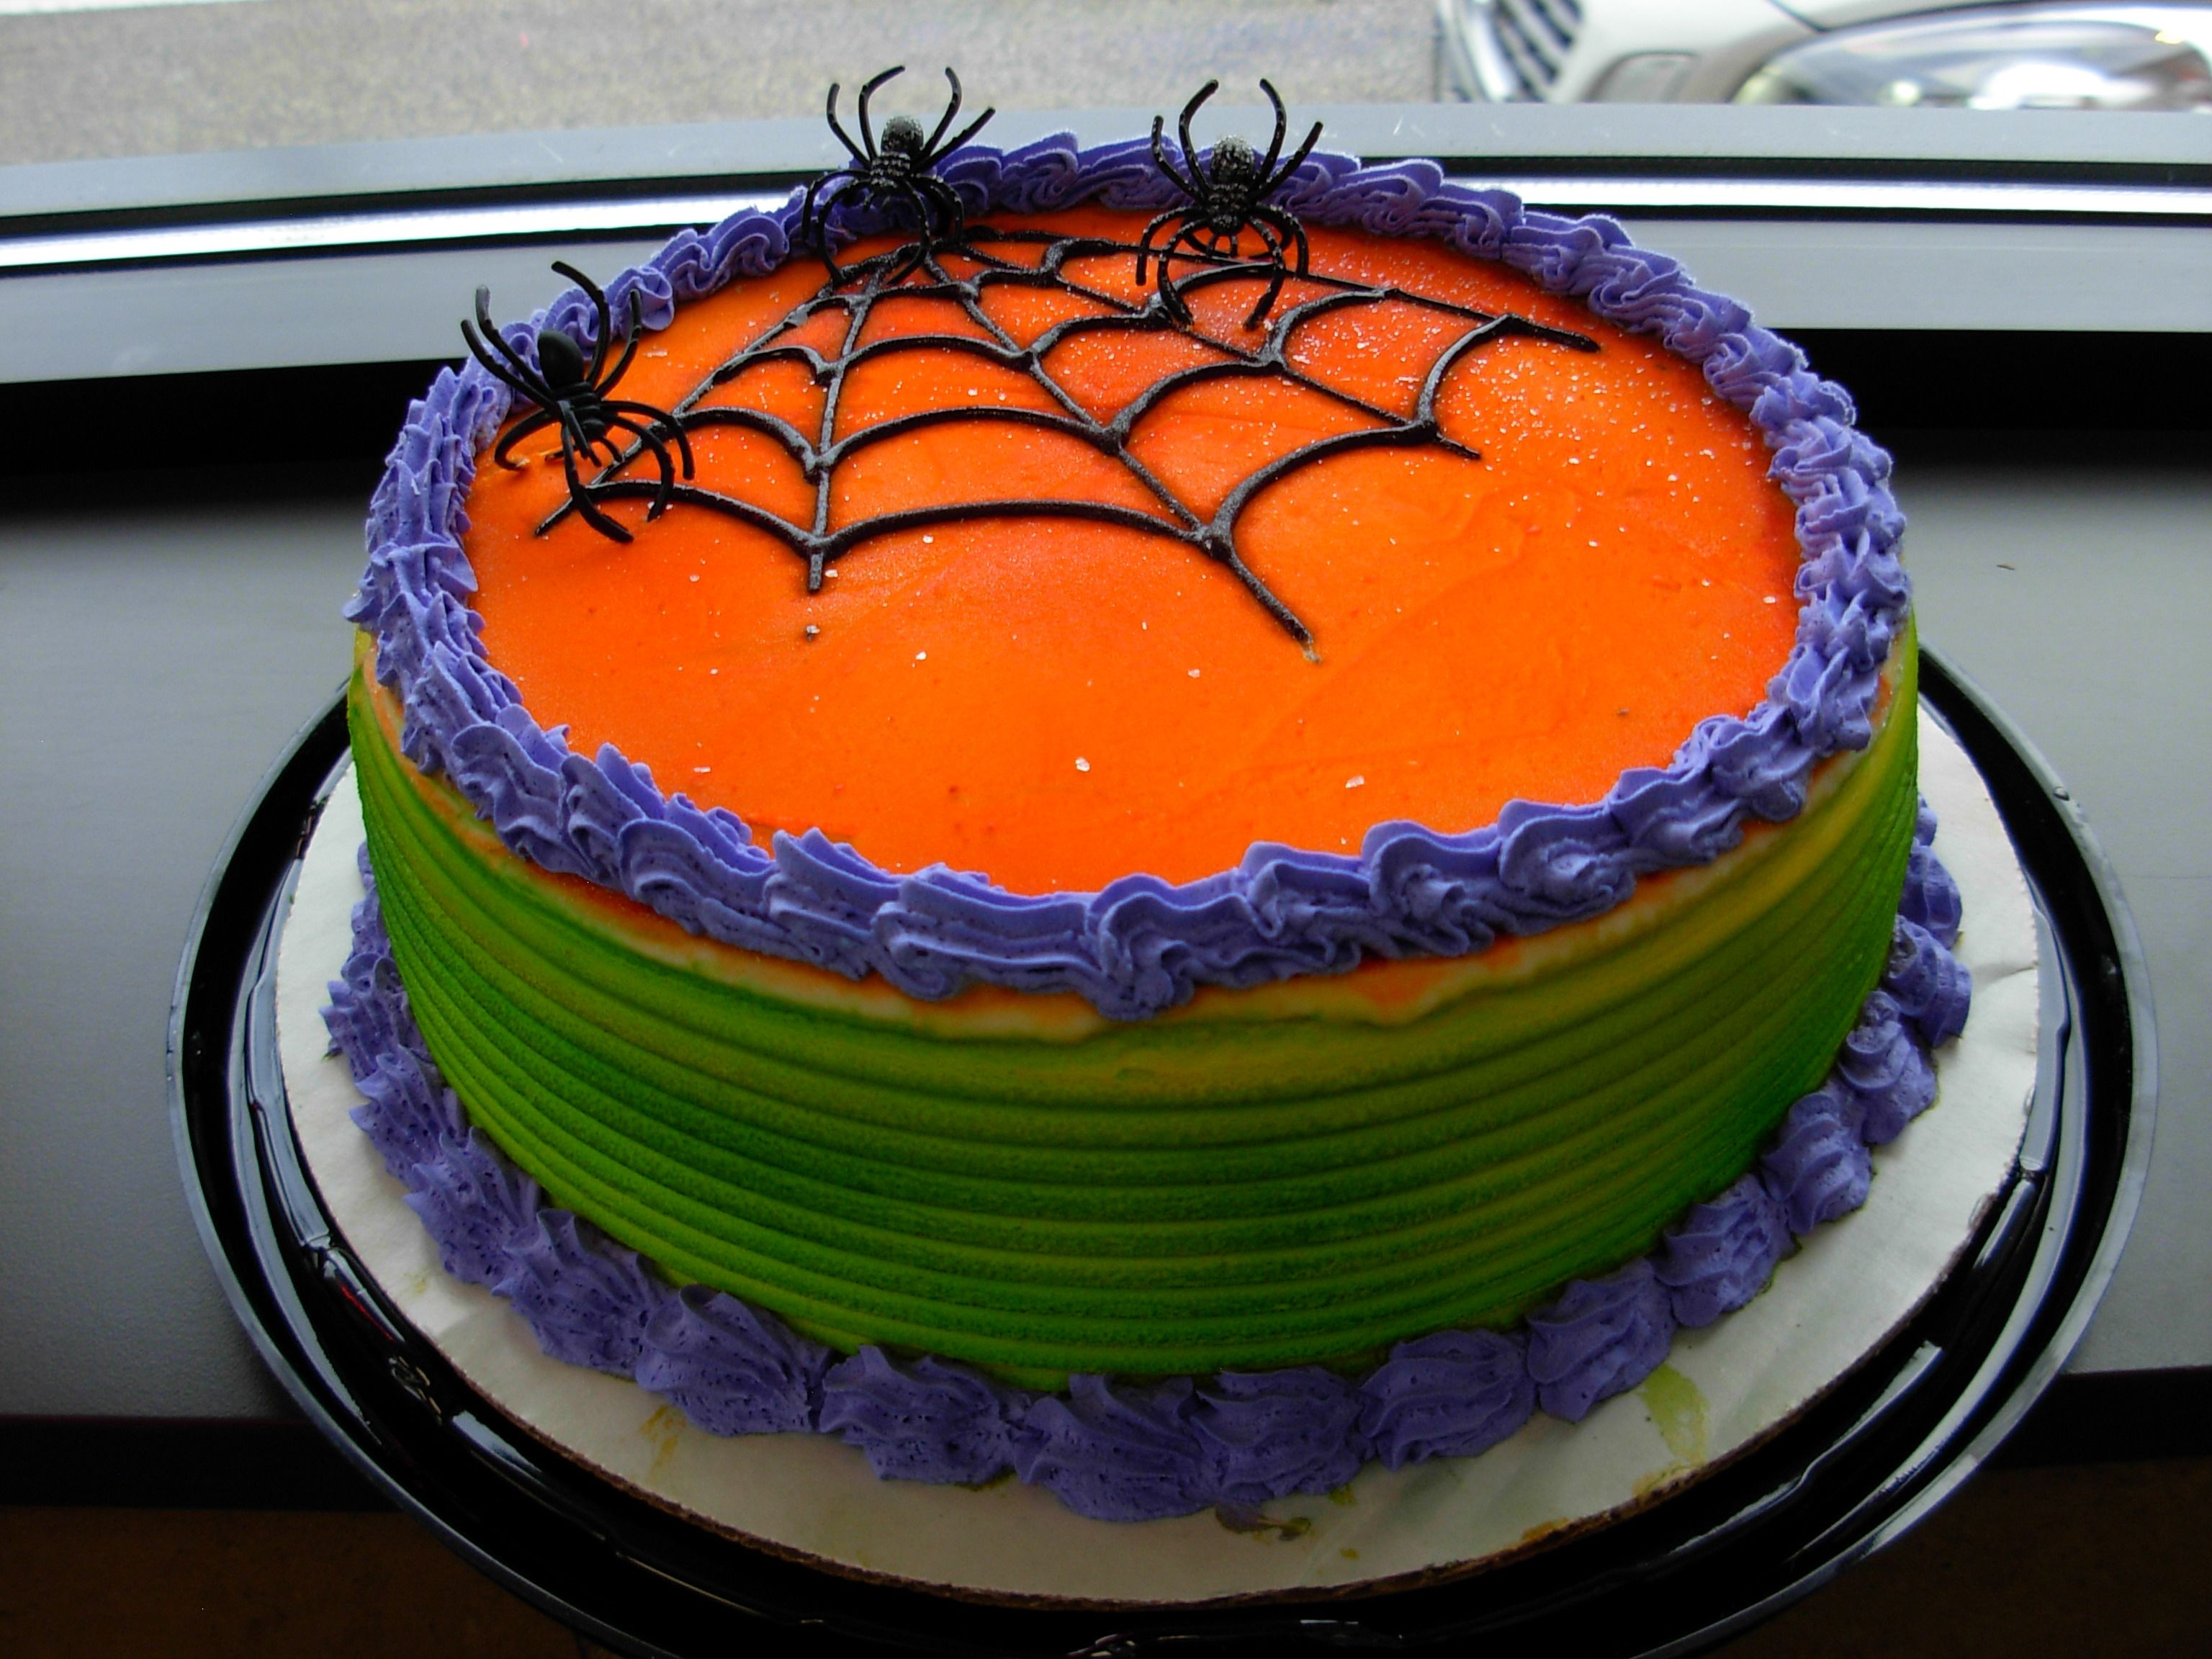 Halloween Cakes At Walmart  Halloween Web DQ Dairy Queen Ice Cream Cake